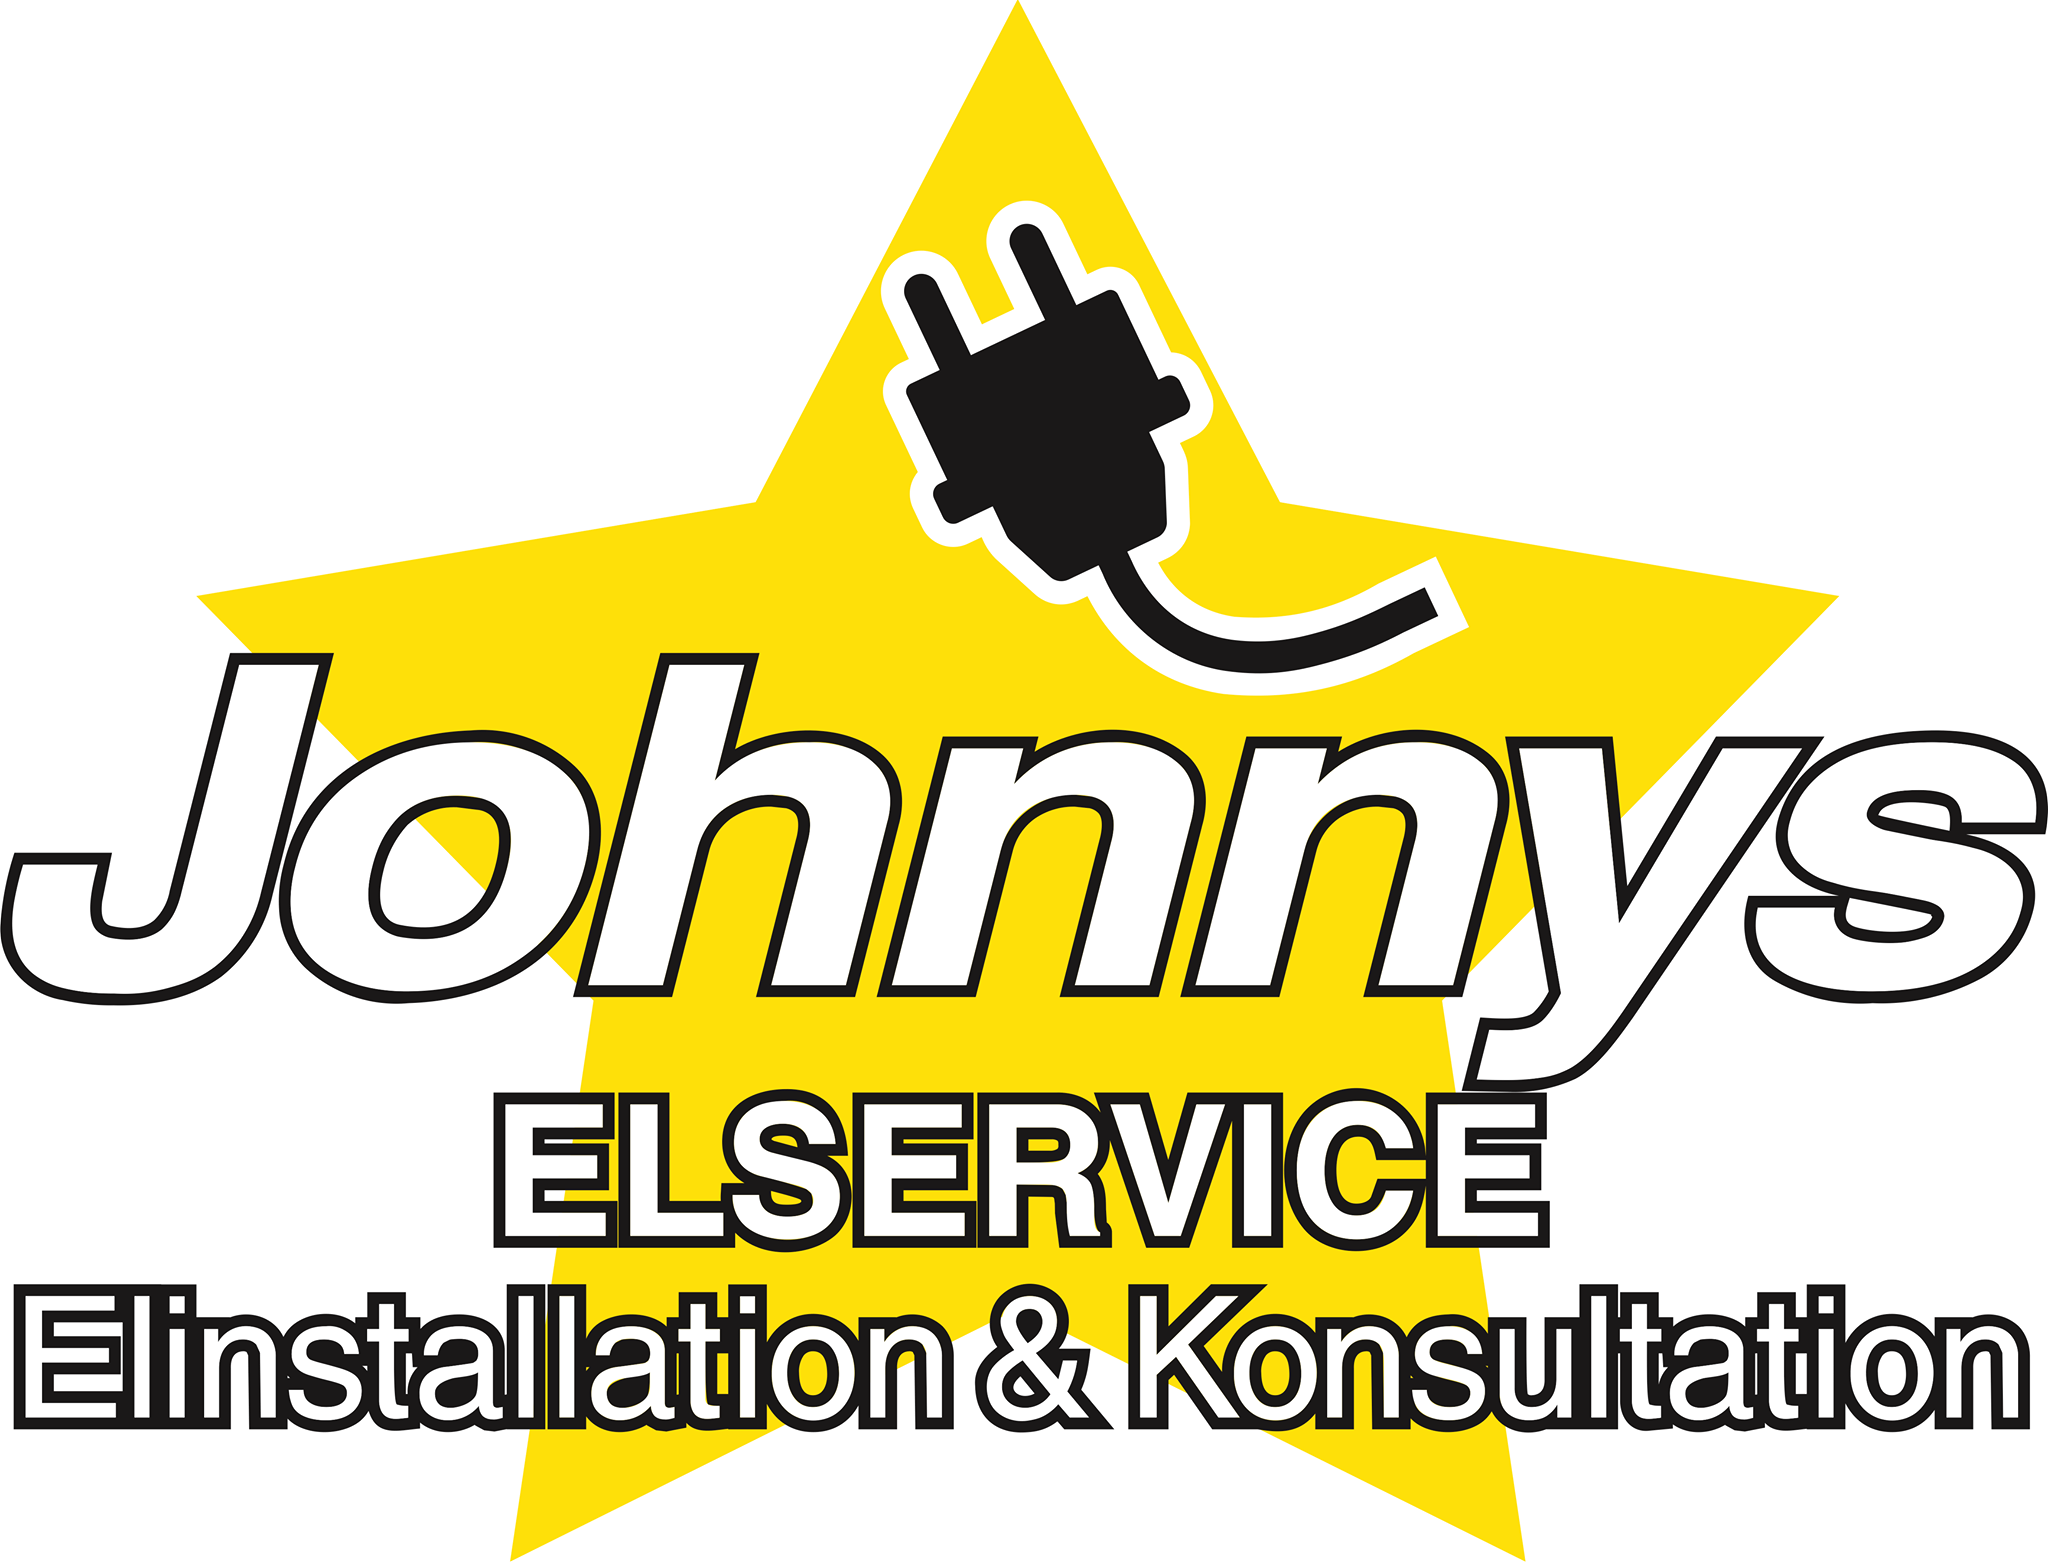 Johnnys Elservice